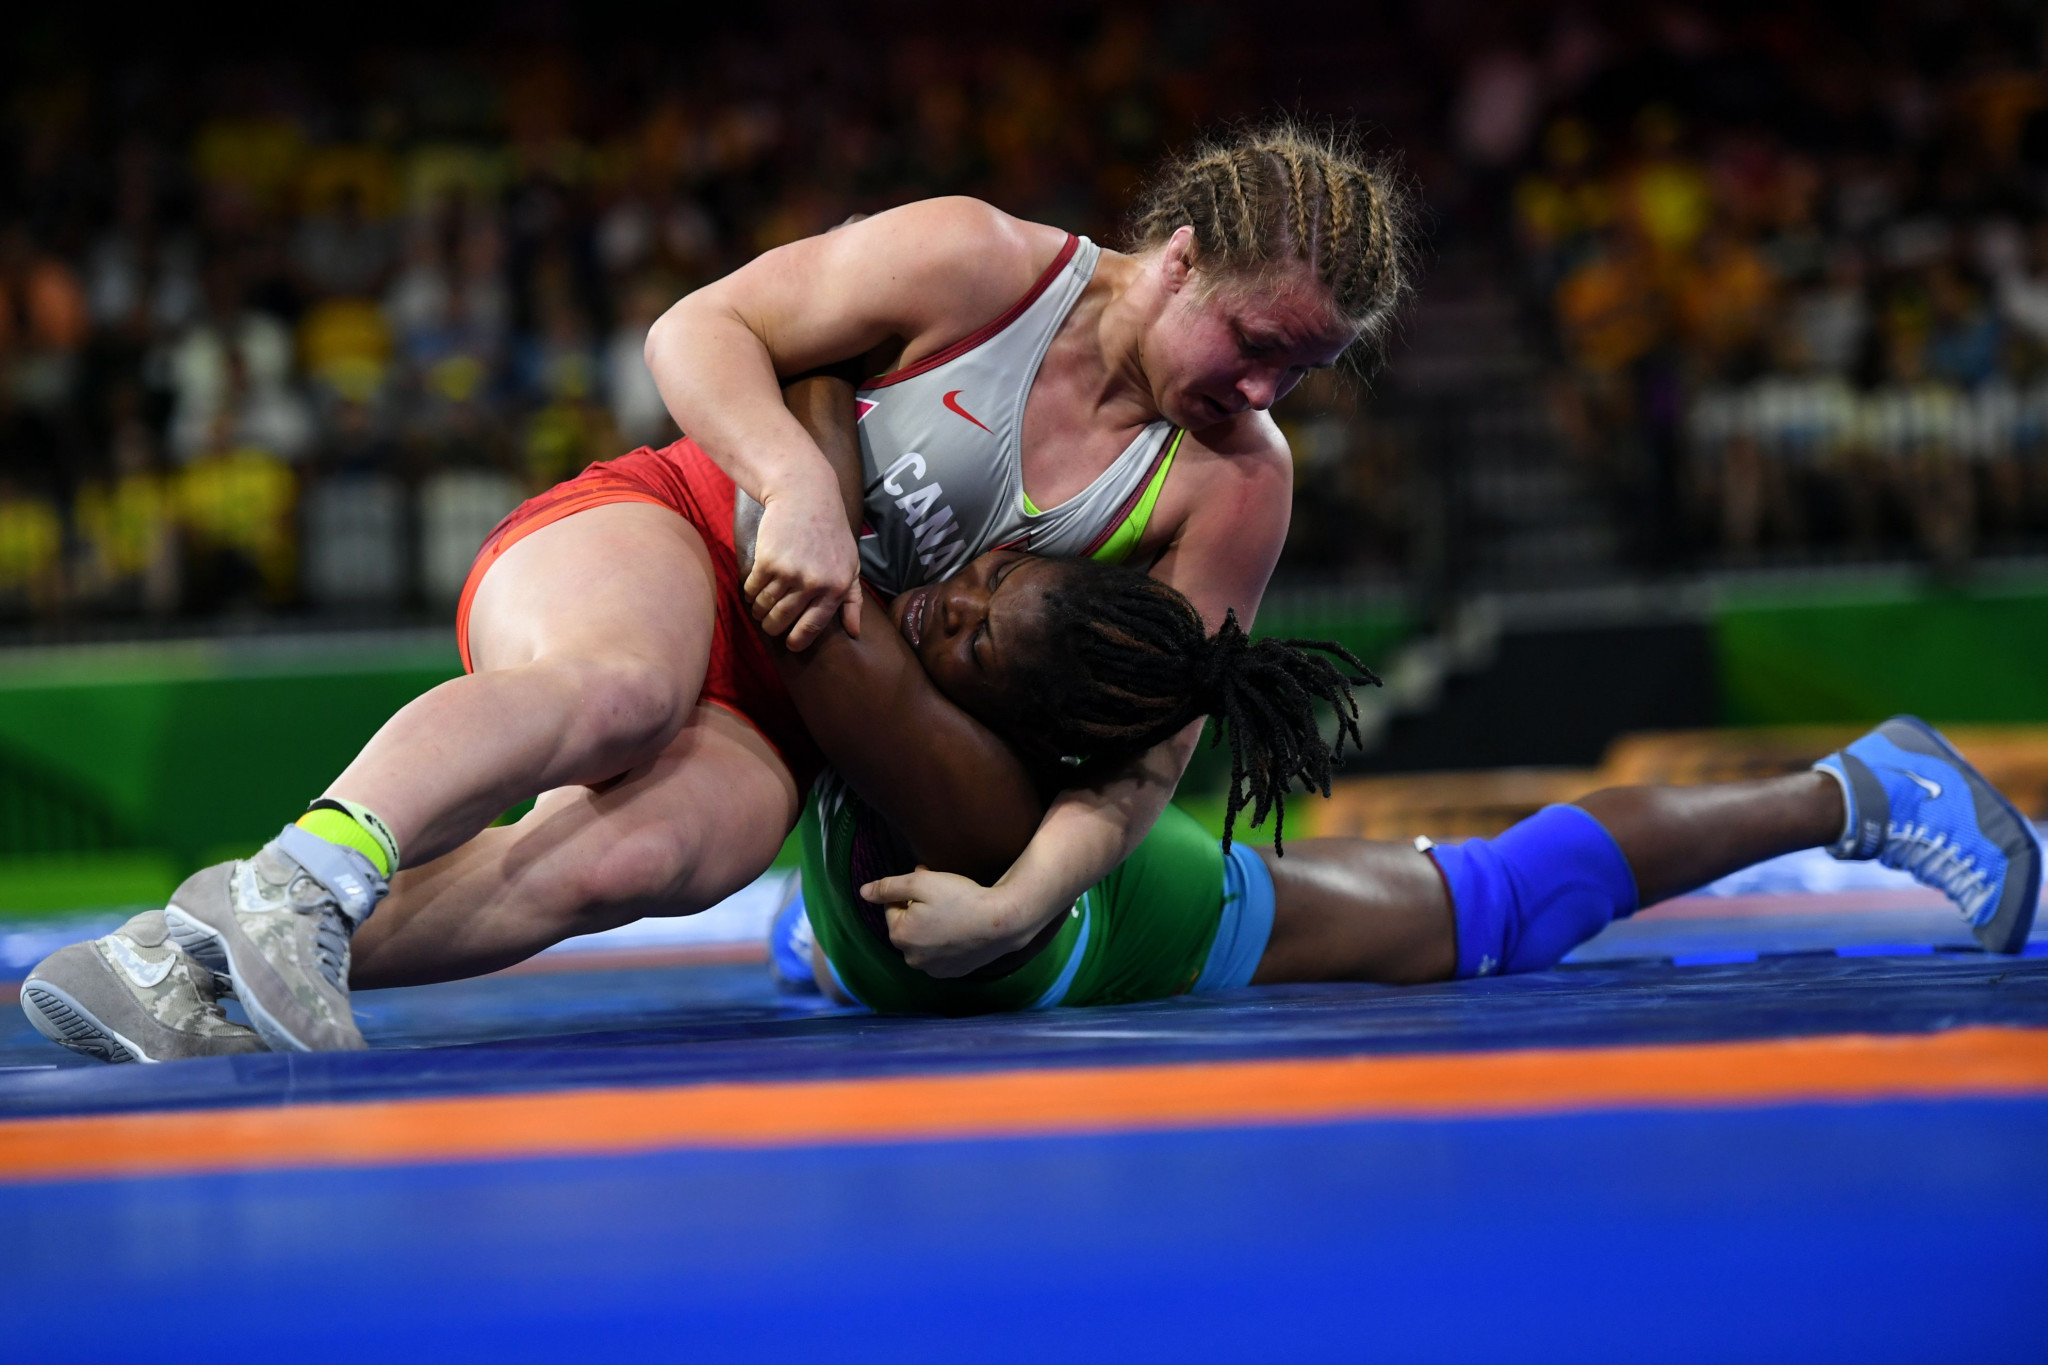 Canada's Erica Wiebe claimed her second Commonwealth Games gold medal with victory over Nigeria's Blessing Onyebuchi in the women's 76kg event at Gold Coast 2018 ©Getty Images